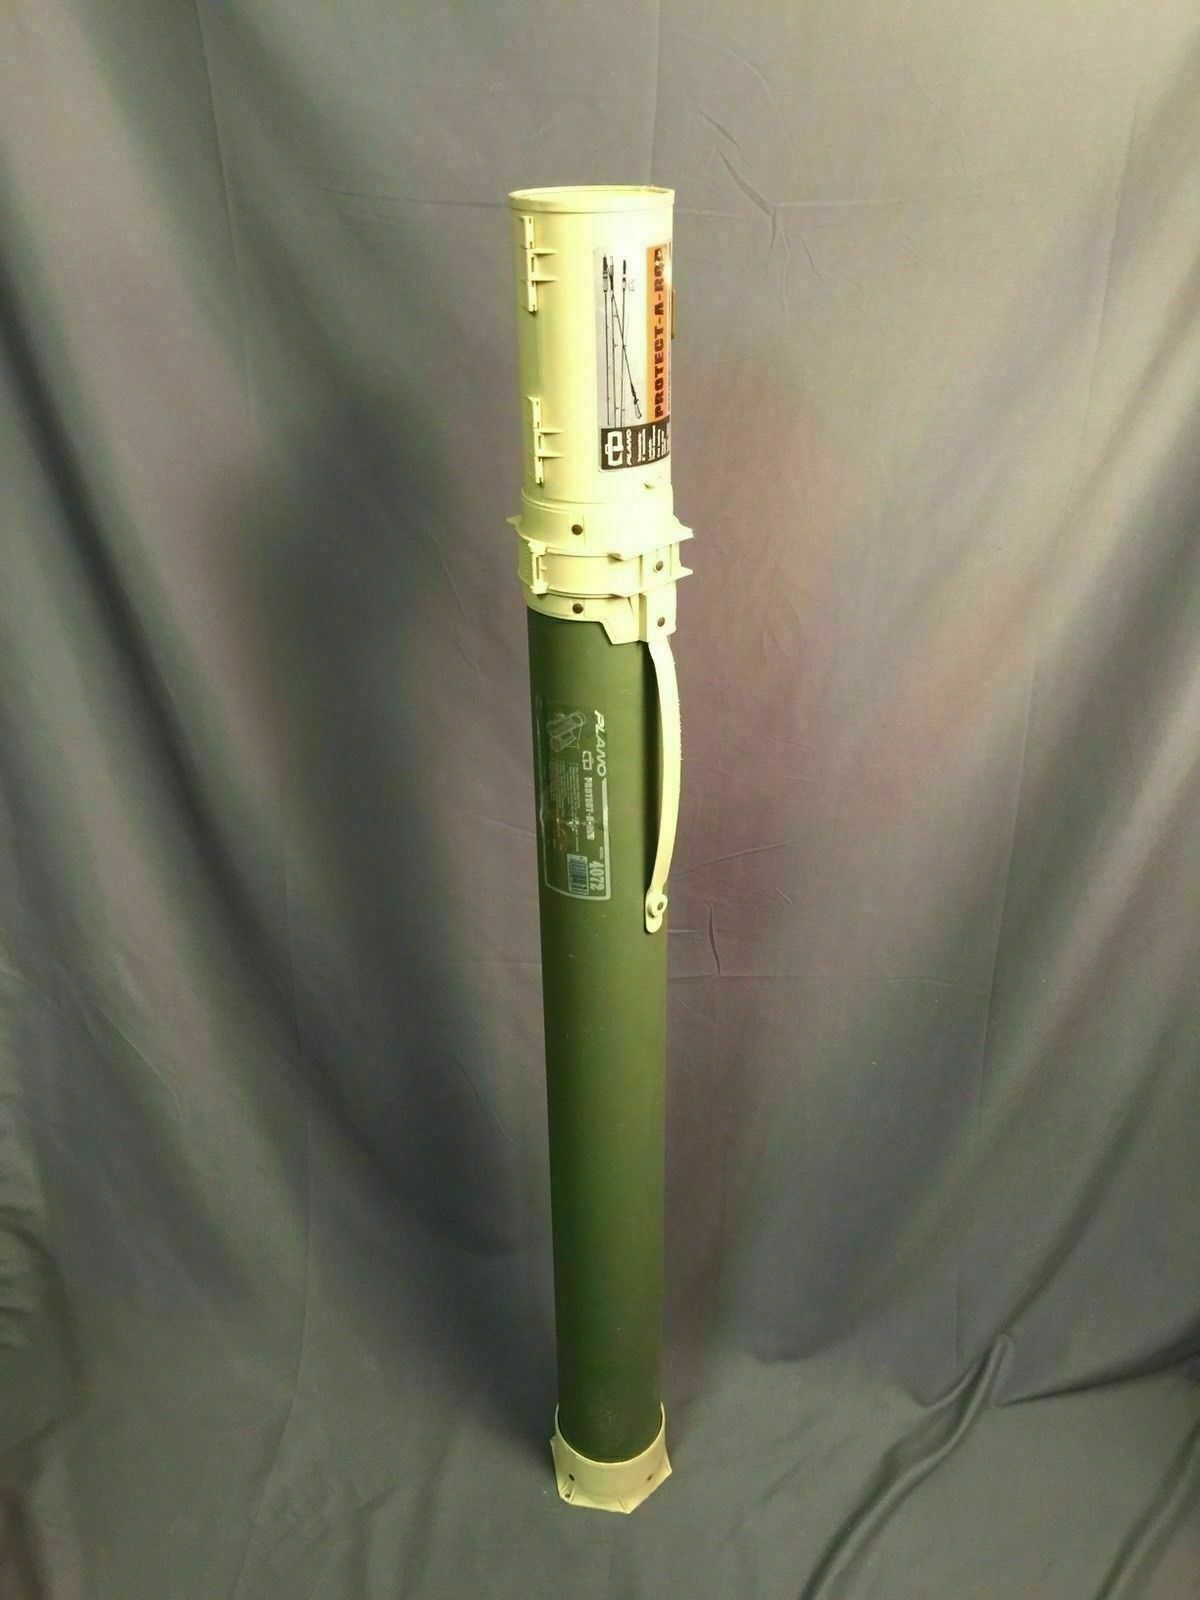 Plano Protect A Rod Telescoping Fishing Rod Case Vintage Model 4072 Made In USA